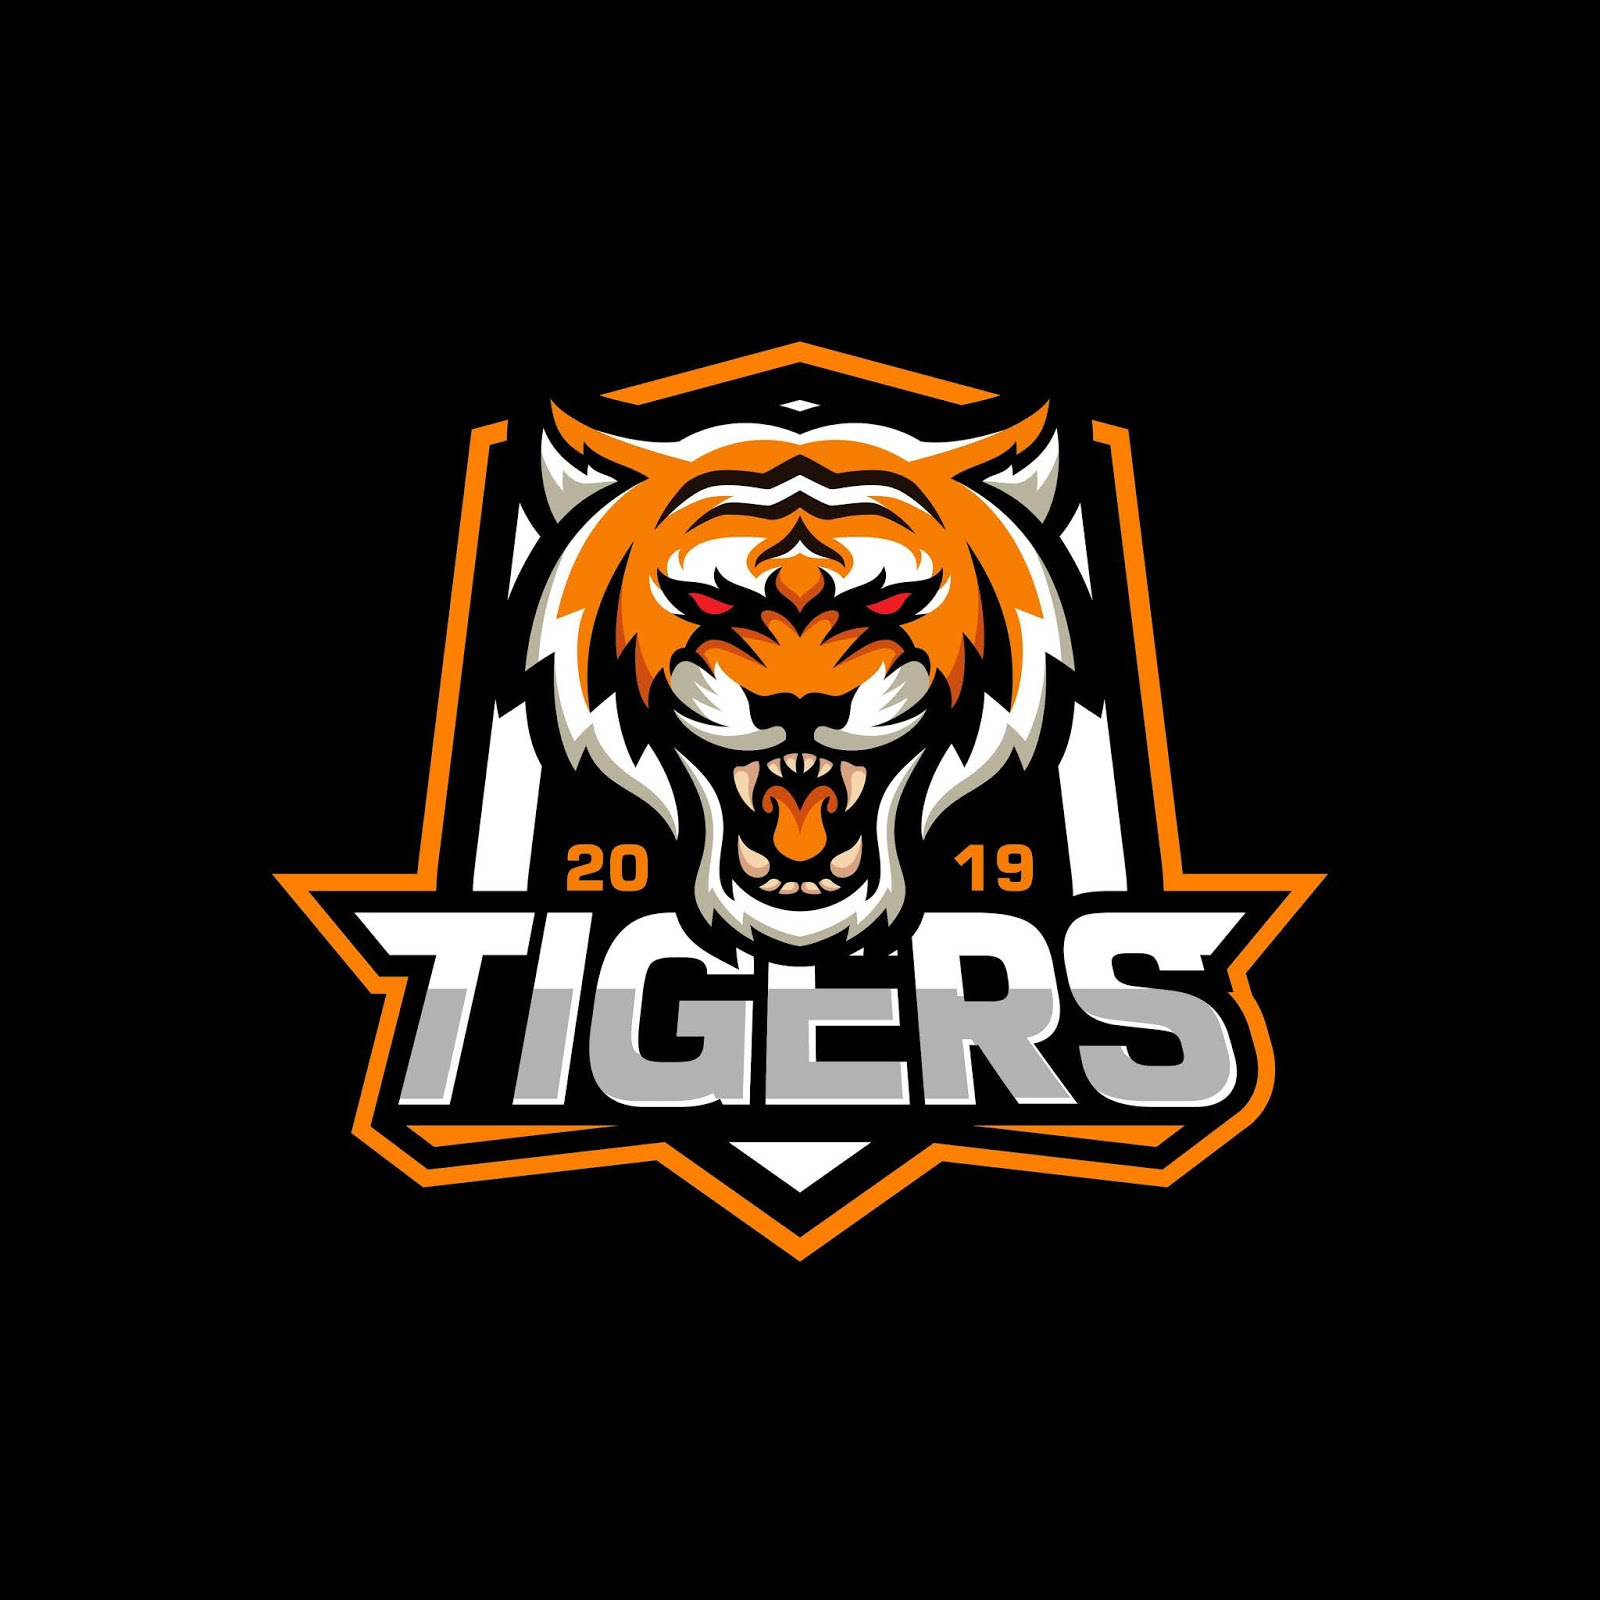 Roaring Tiger Logo Free Download Vector CDR, AI, EPS and PNG Formats